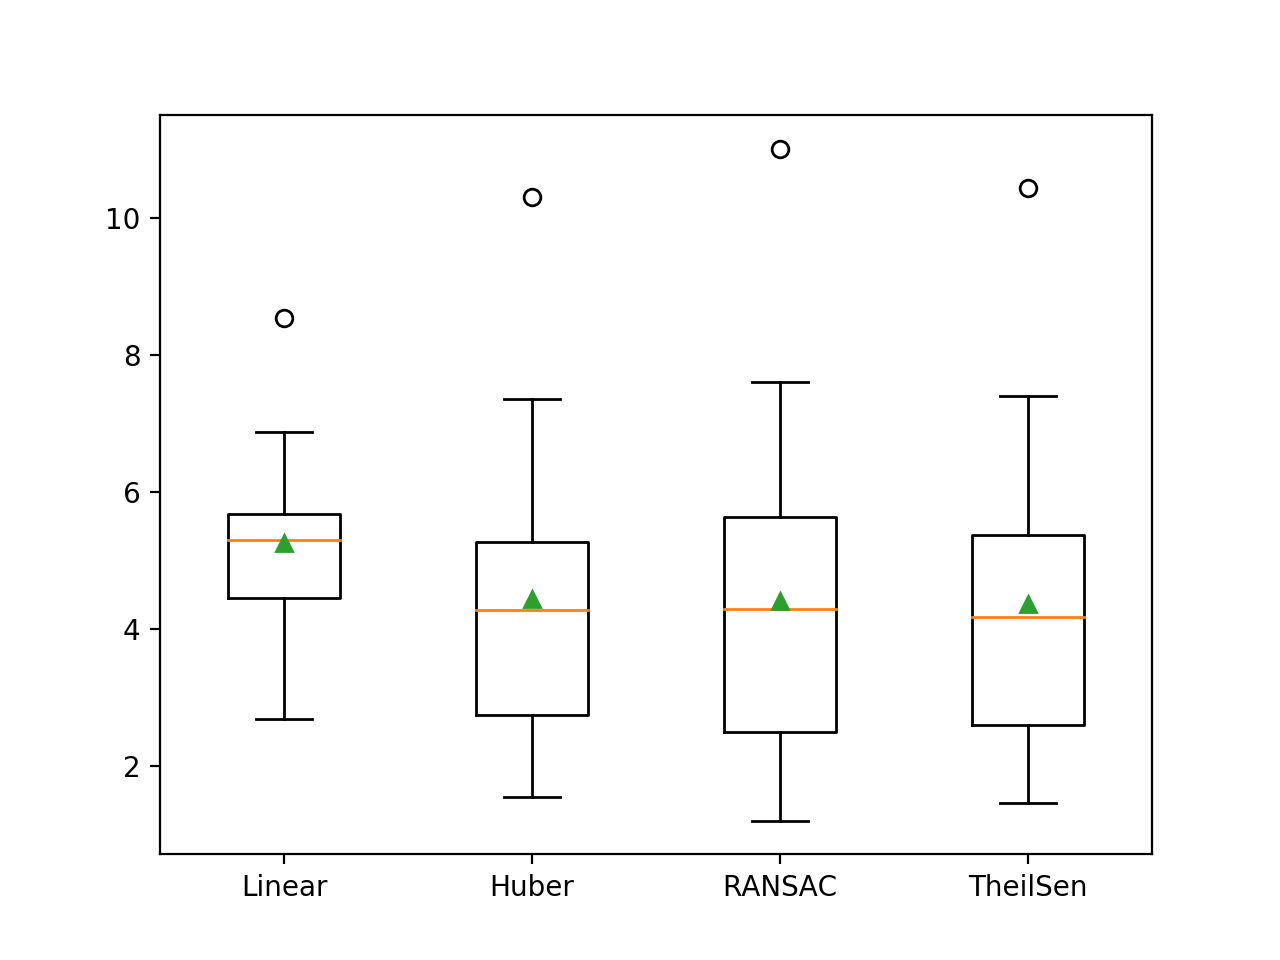 Box and Whisker Plot of MAE Scores for Robust Regression Algorithms